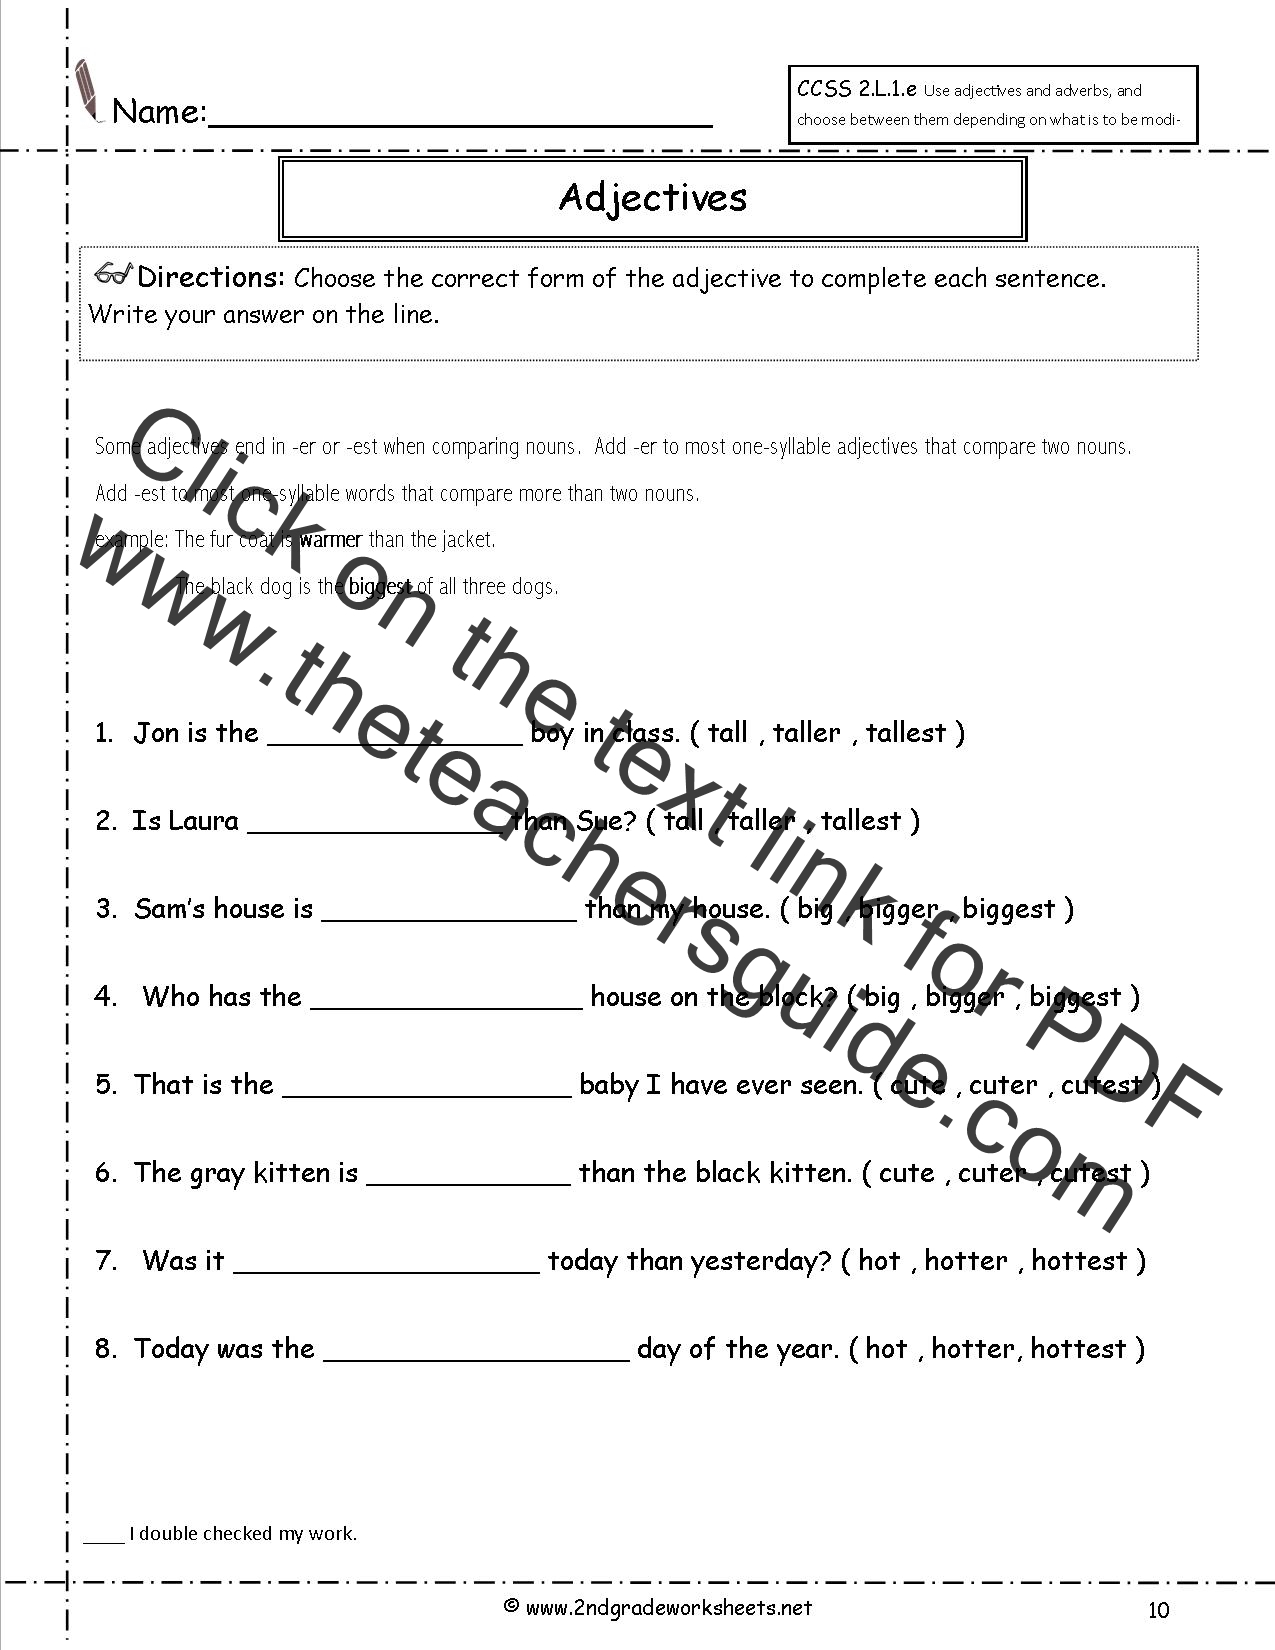 worksheet Adjectives Worksheets For Grade 5 free using adjectives and adverbs worksheets worksheet